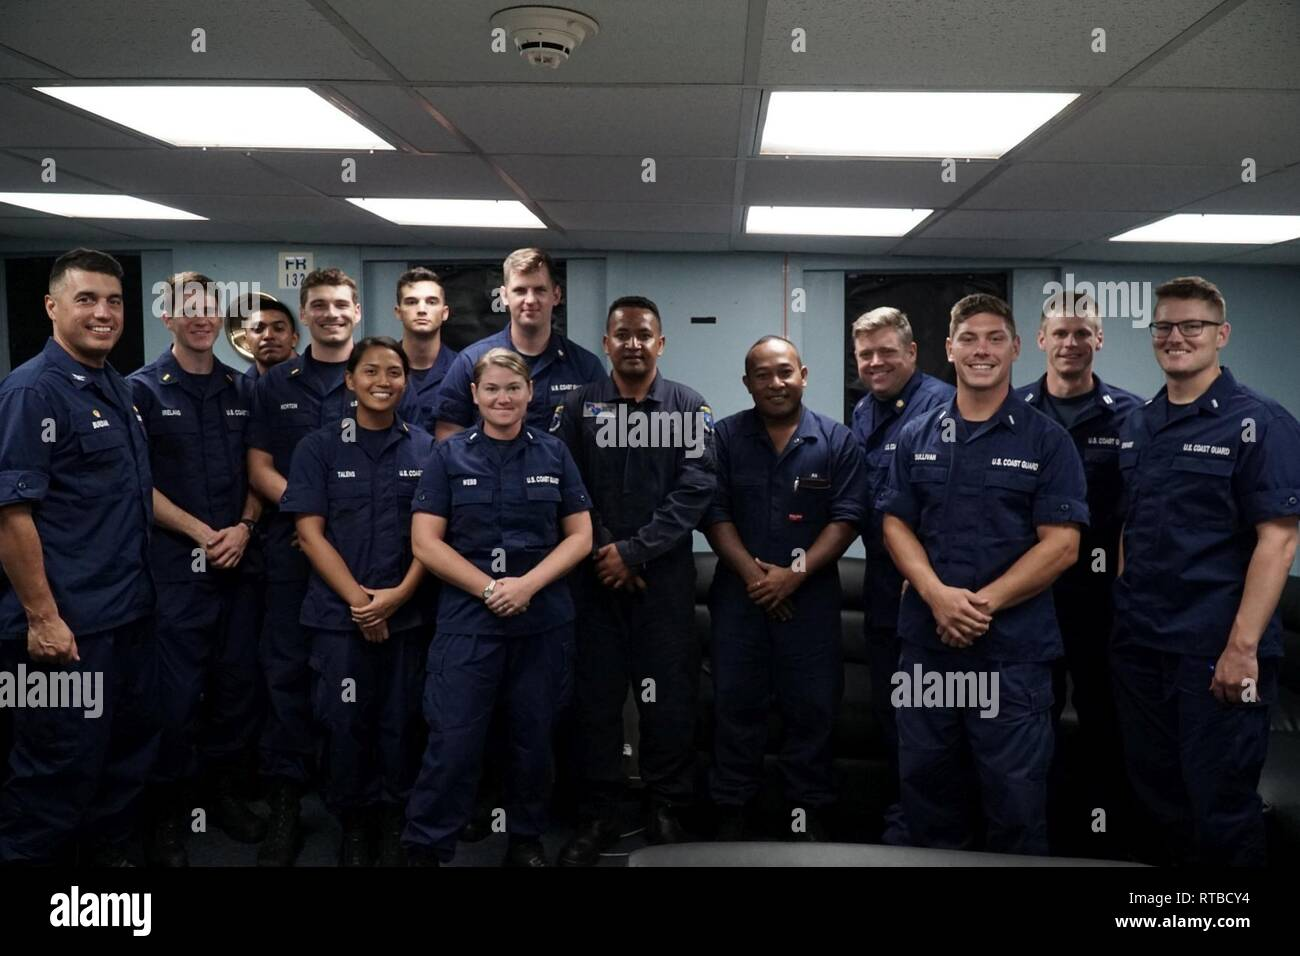 The crew of Coast Guard Cutter Mellon (WHEC 717) embarked ship riders from Tuvalu to enforce fisheries laws in each partner nations' respective exclusive economic zones (EEZ) in early 2019. The Mellon's boarding teams and the fisheries officers conducted a professional exchange and law enforcement training, sharing tactics and best practices. - Stock Image